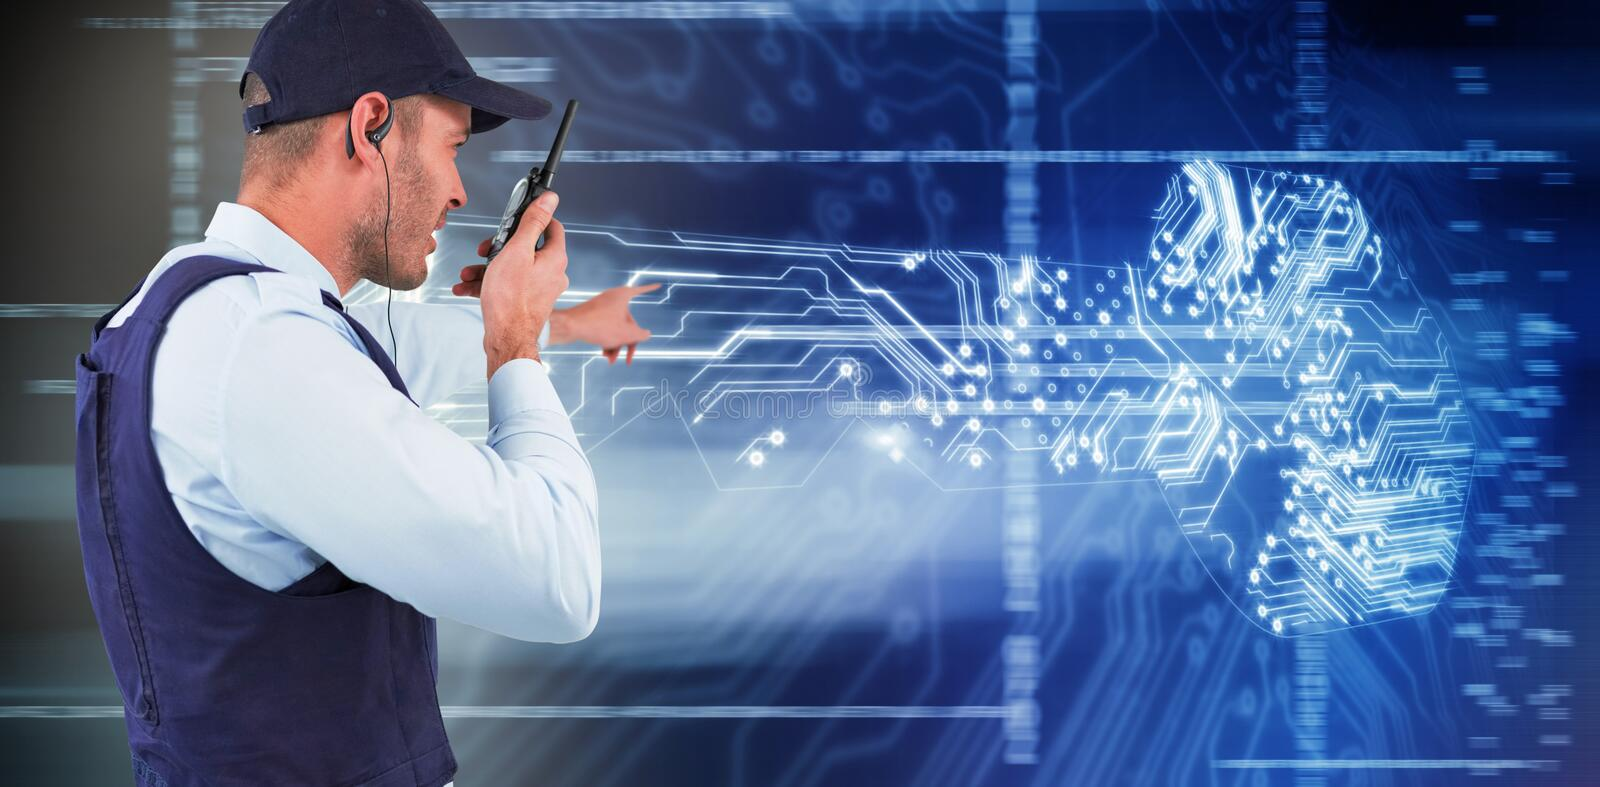 Composite image of side view of security officer talking on walkie talkie. Side view of security officer talking on walkie talkie against virus background royalty free stock image